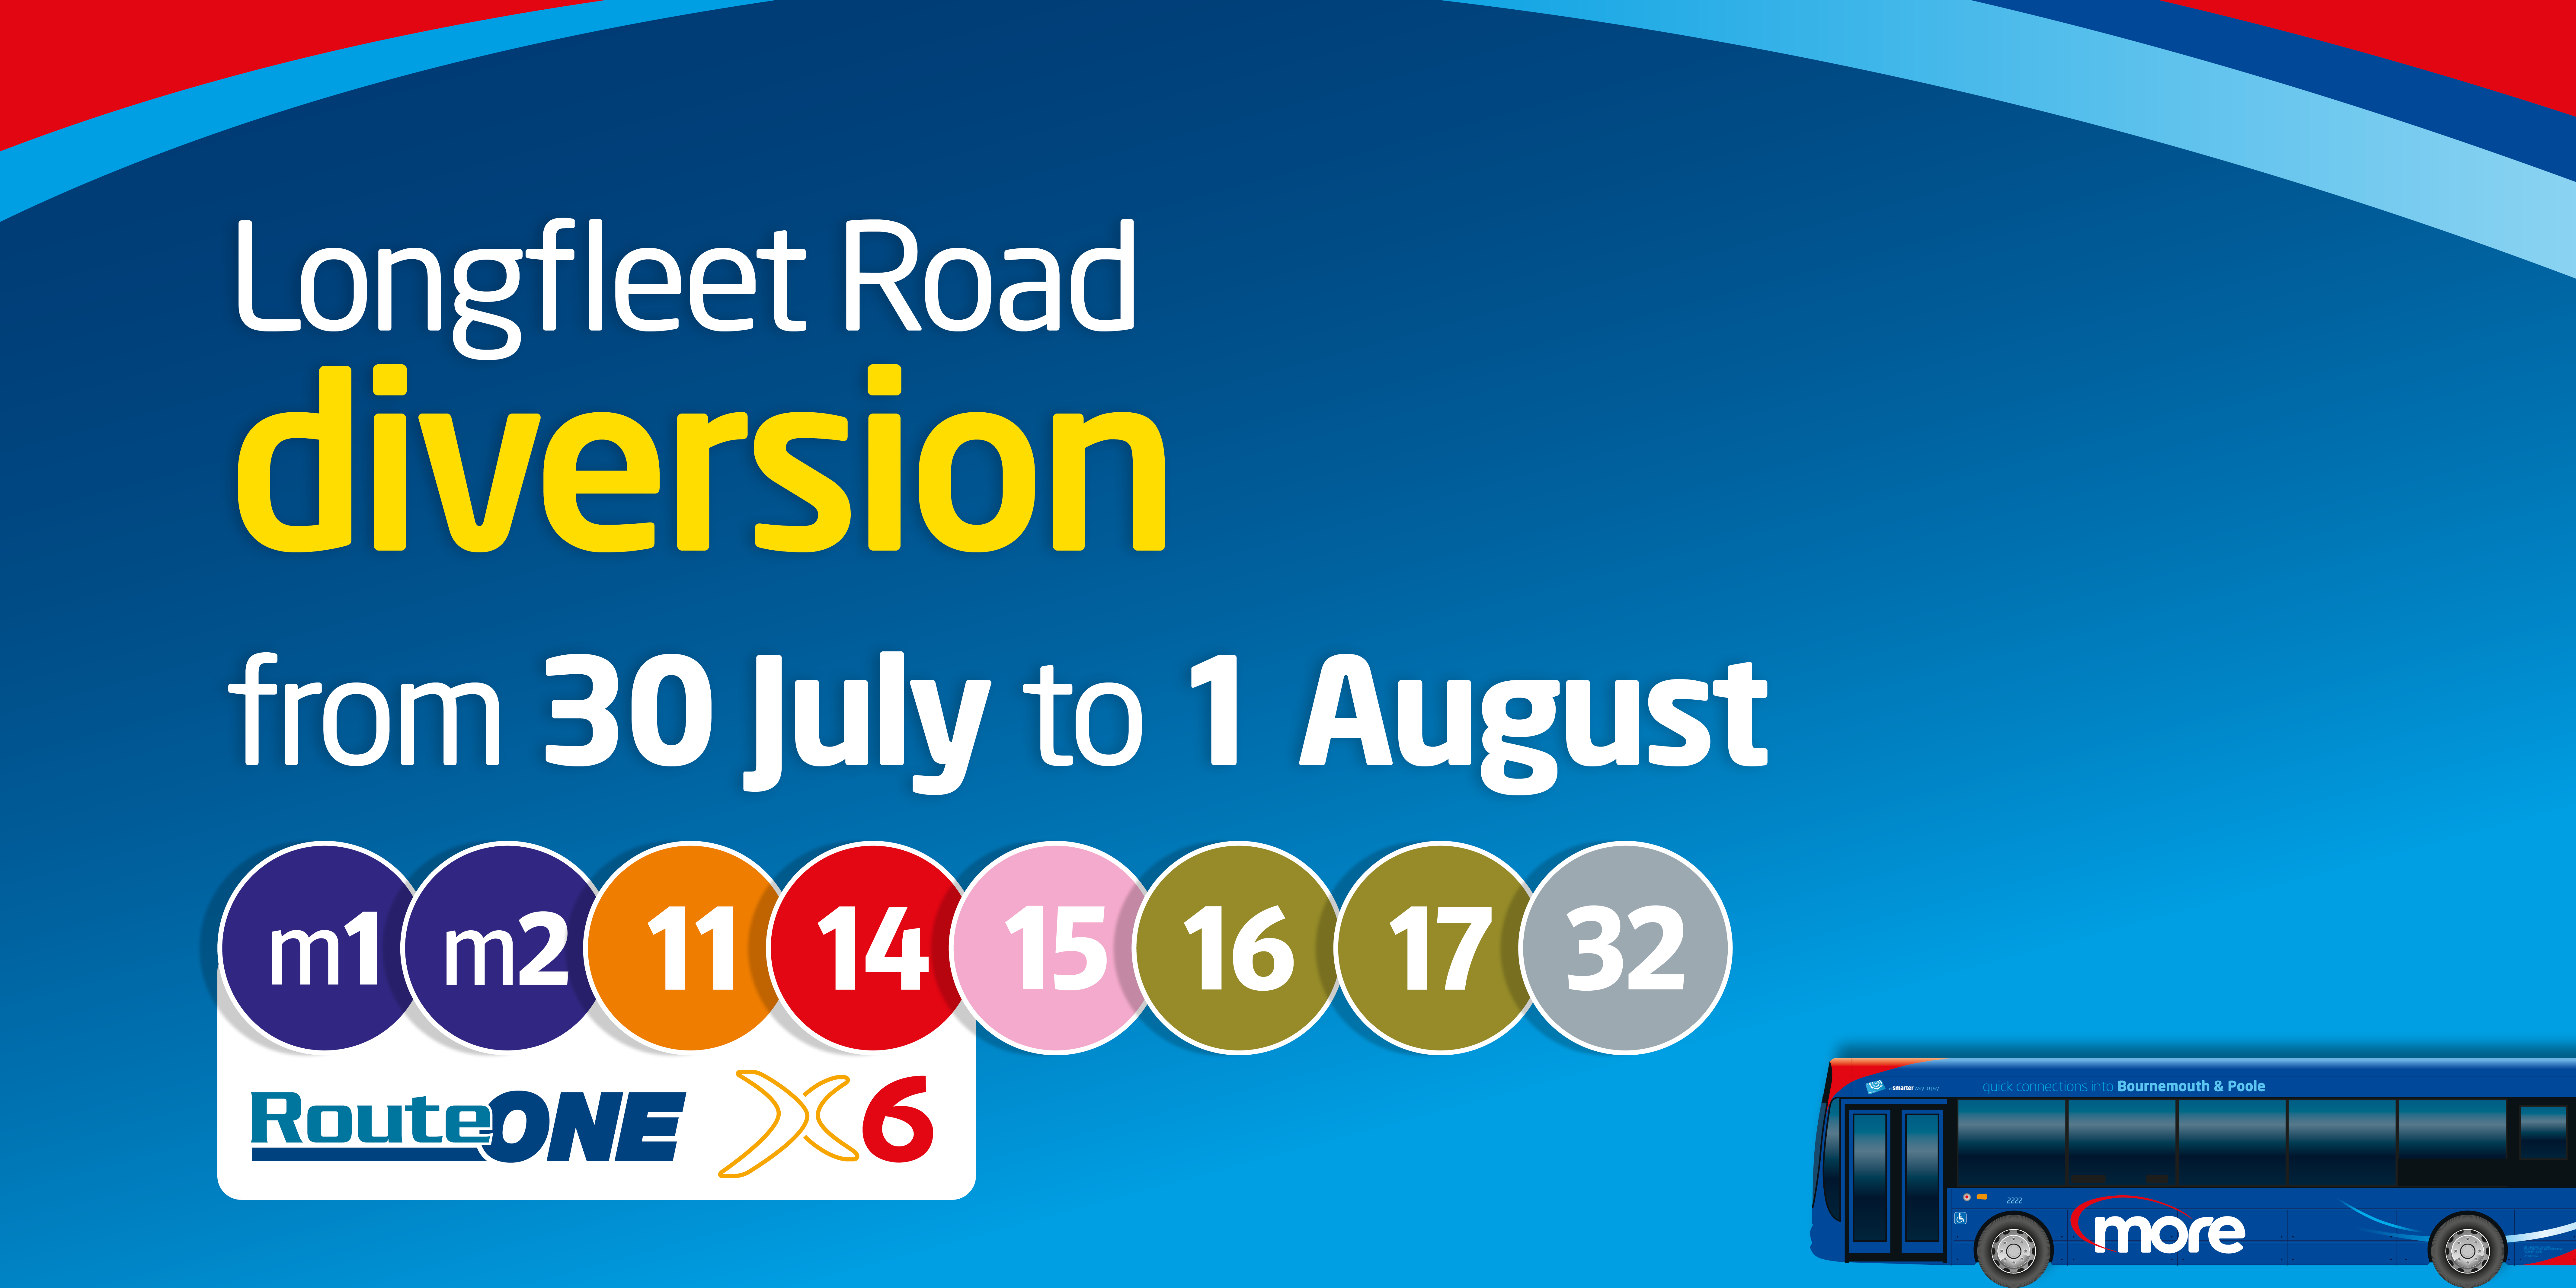 longfleet road diversion from 30th july to 1st august